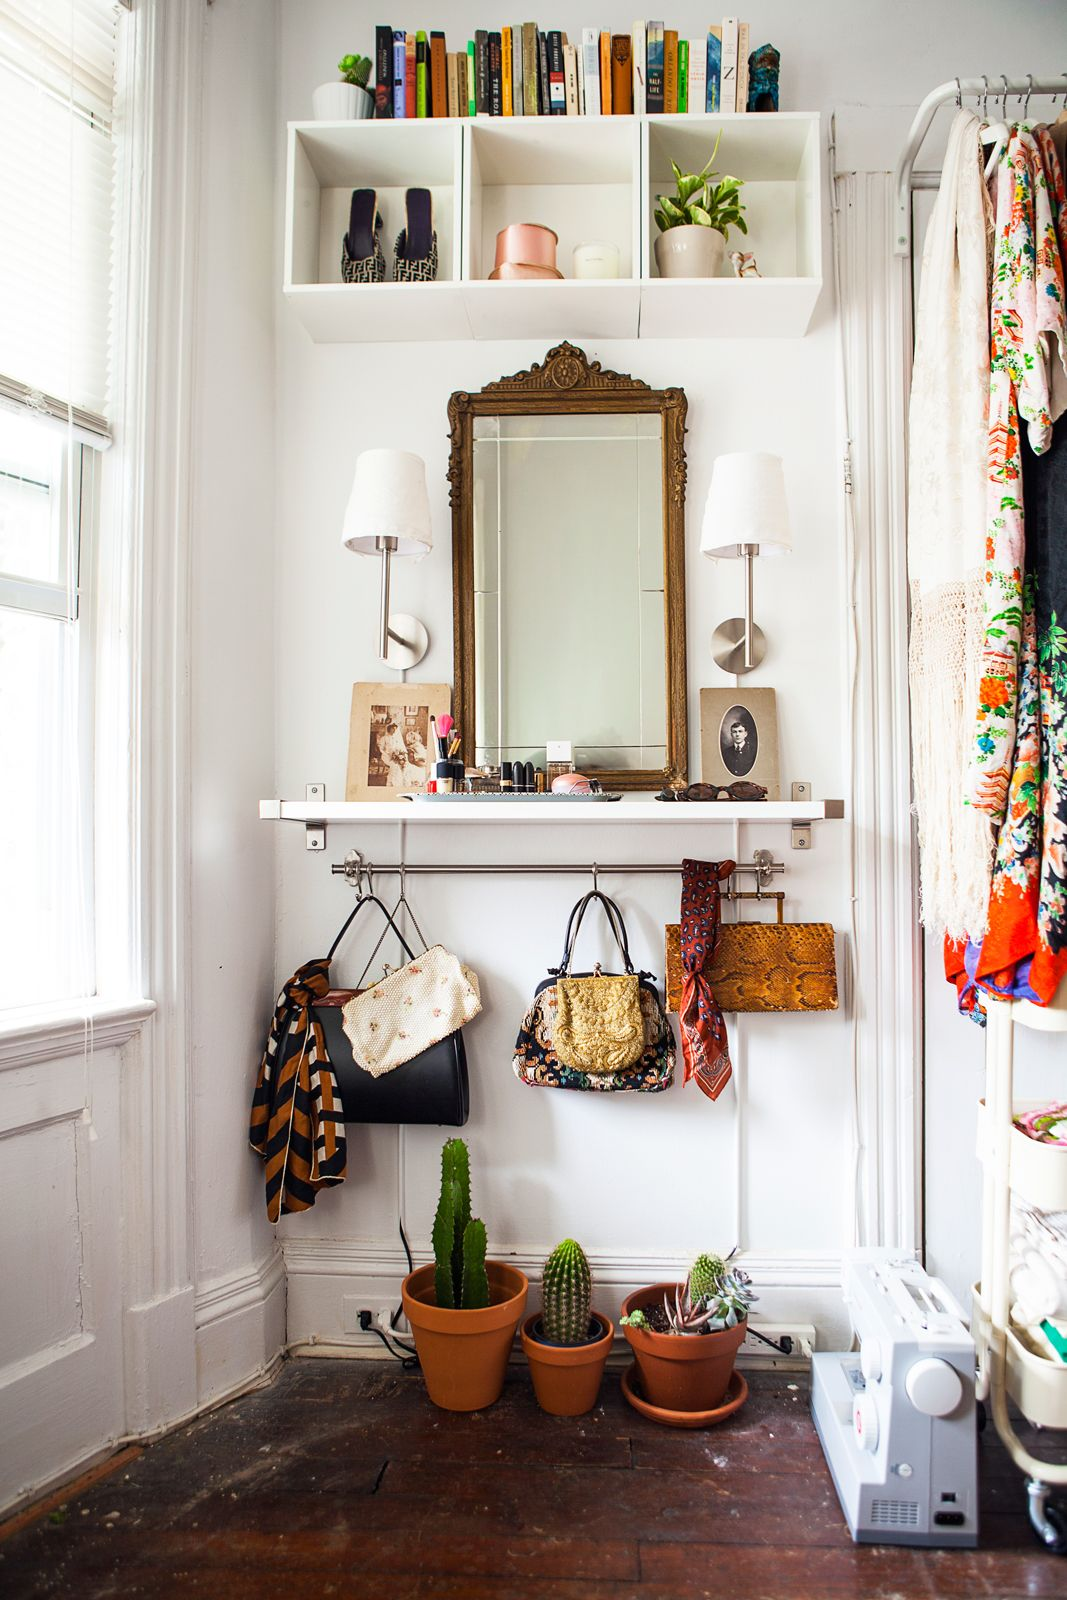 How to organize an awkward closet #hallway